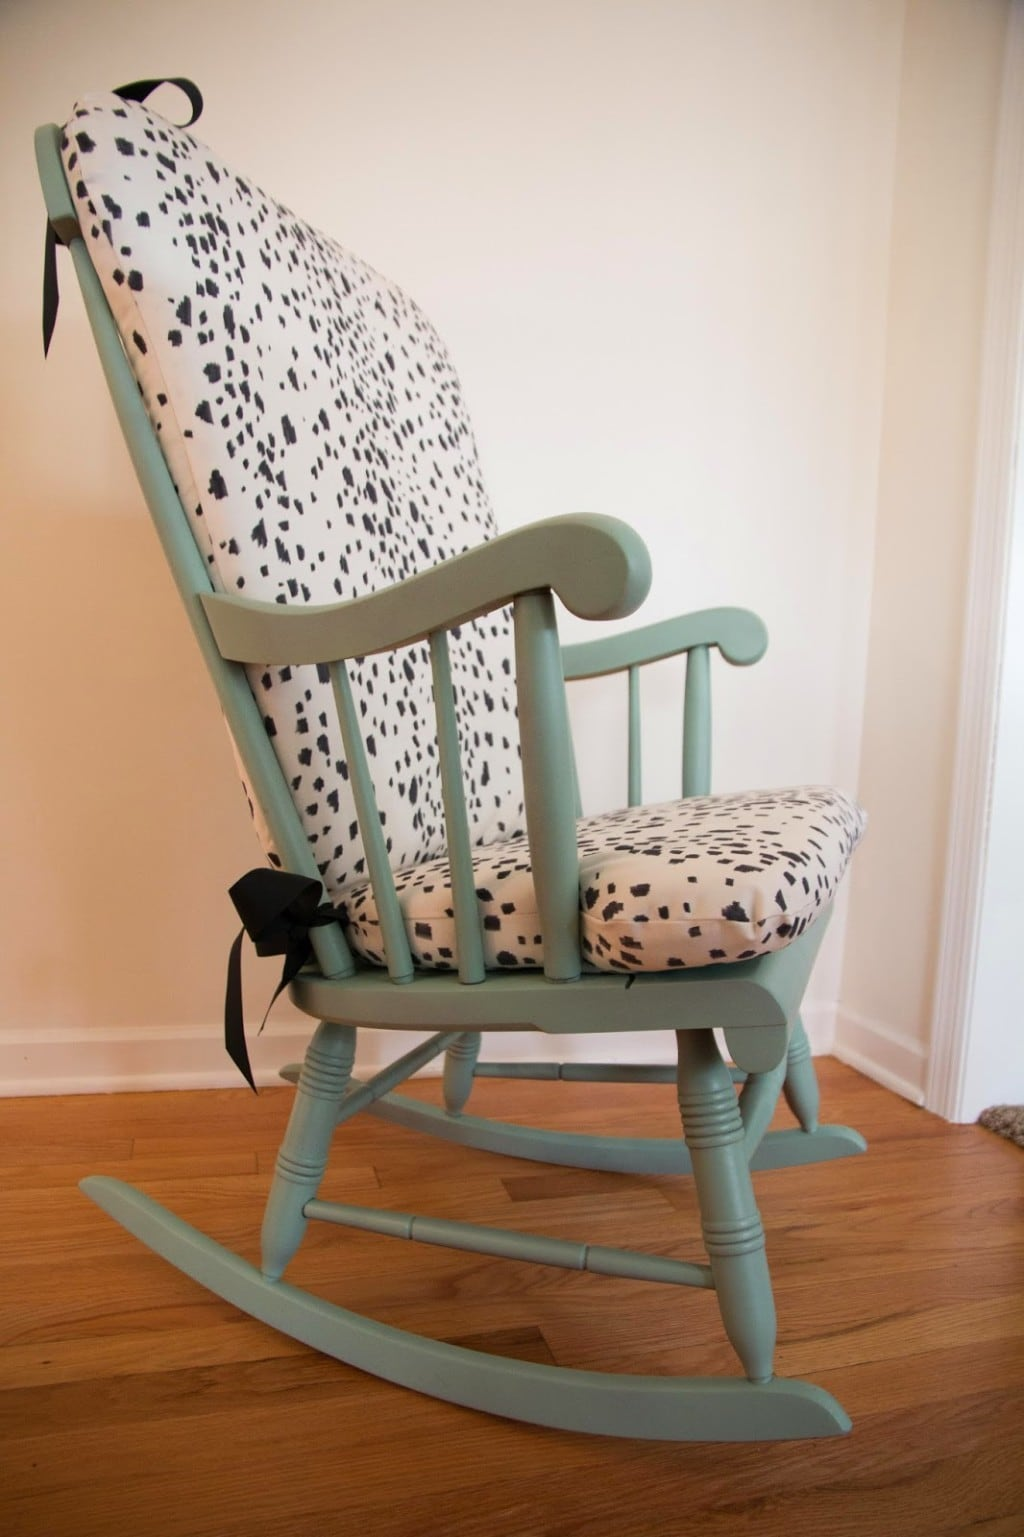 Upholstered Rocking Chair Diy Upholstered Rocking Chair Home Decor Diy Decor Mom